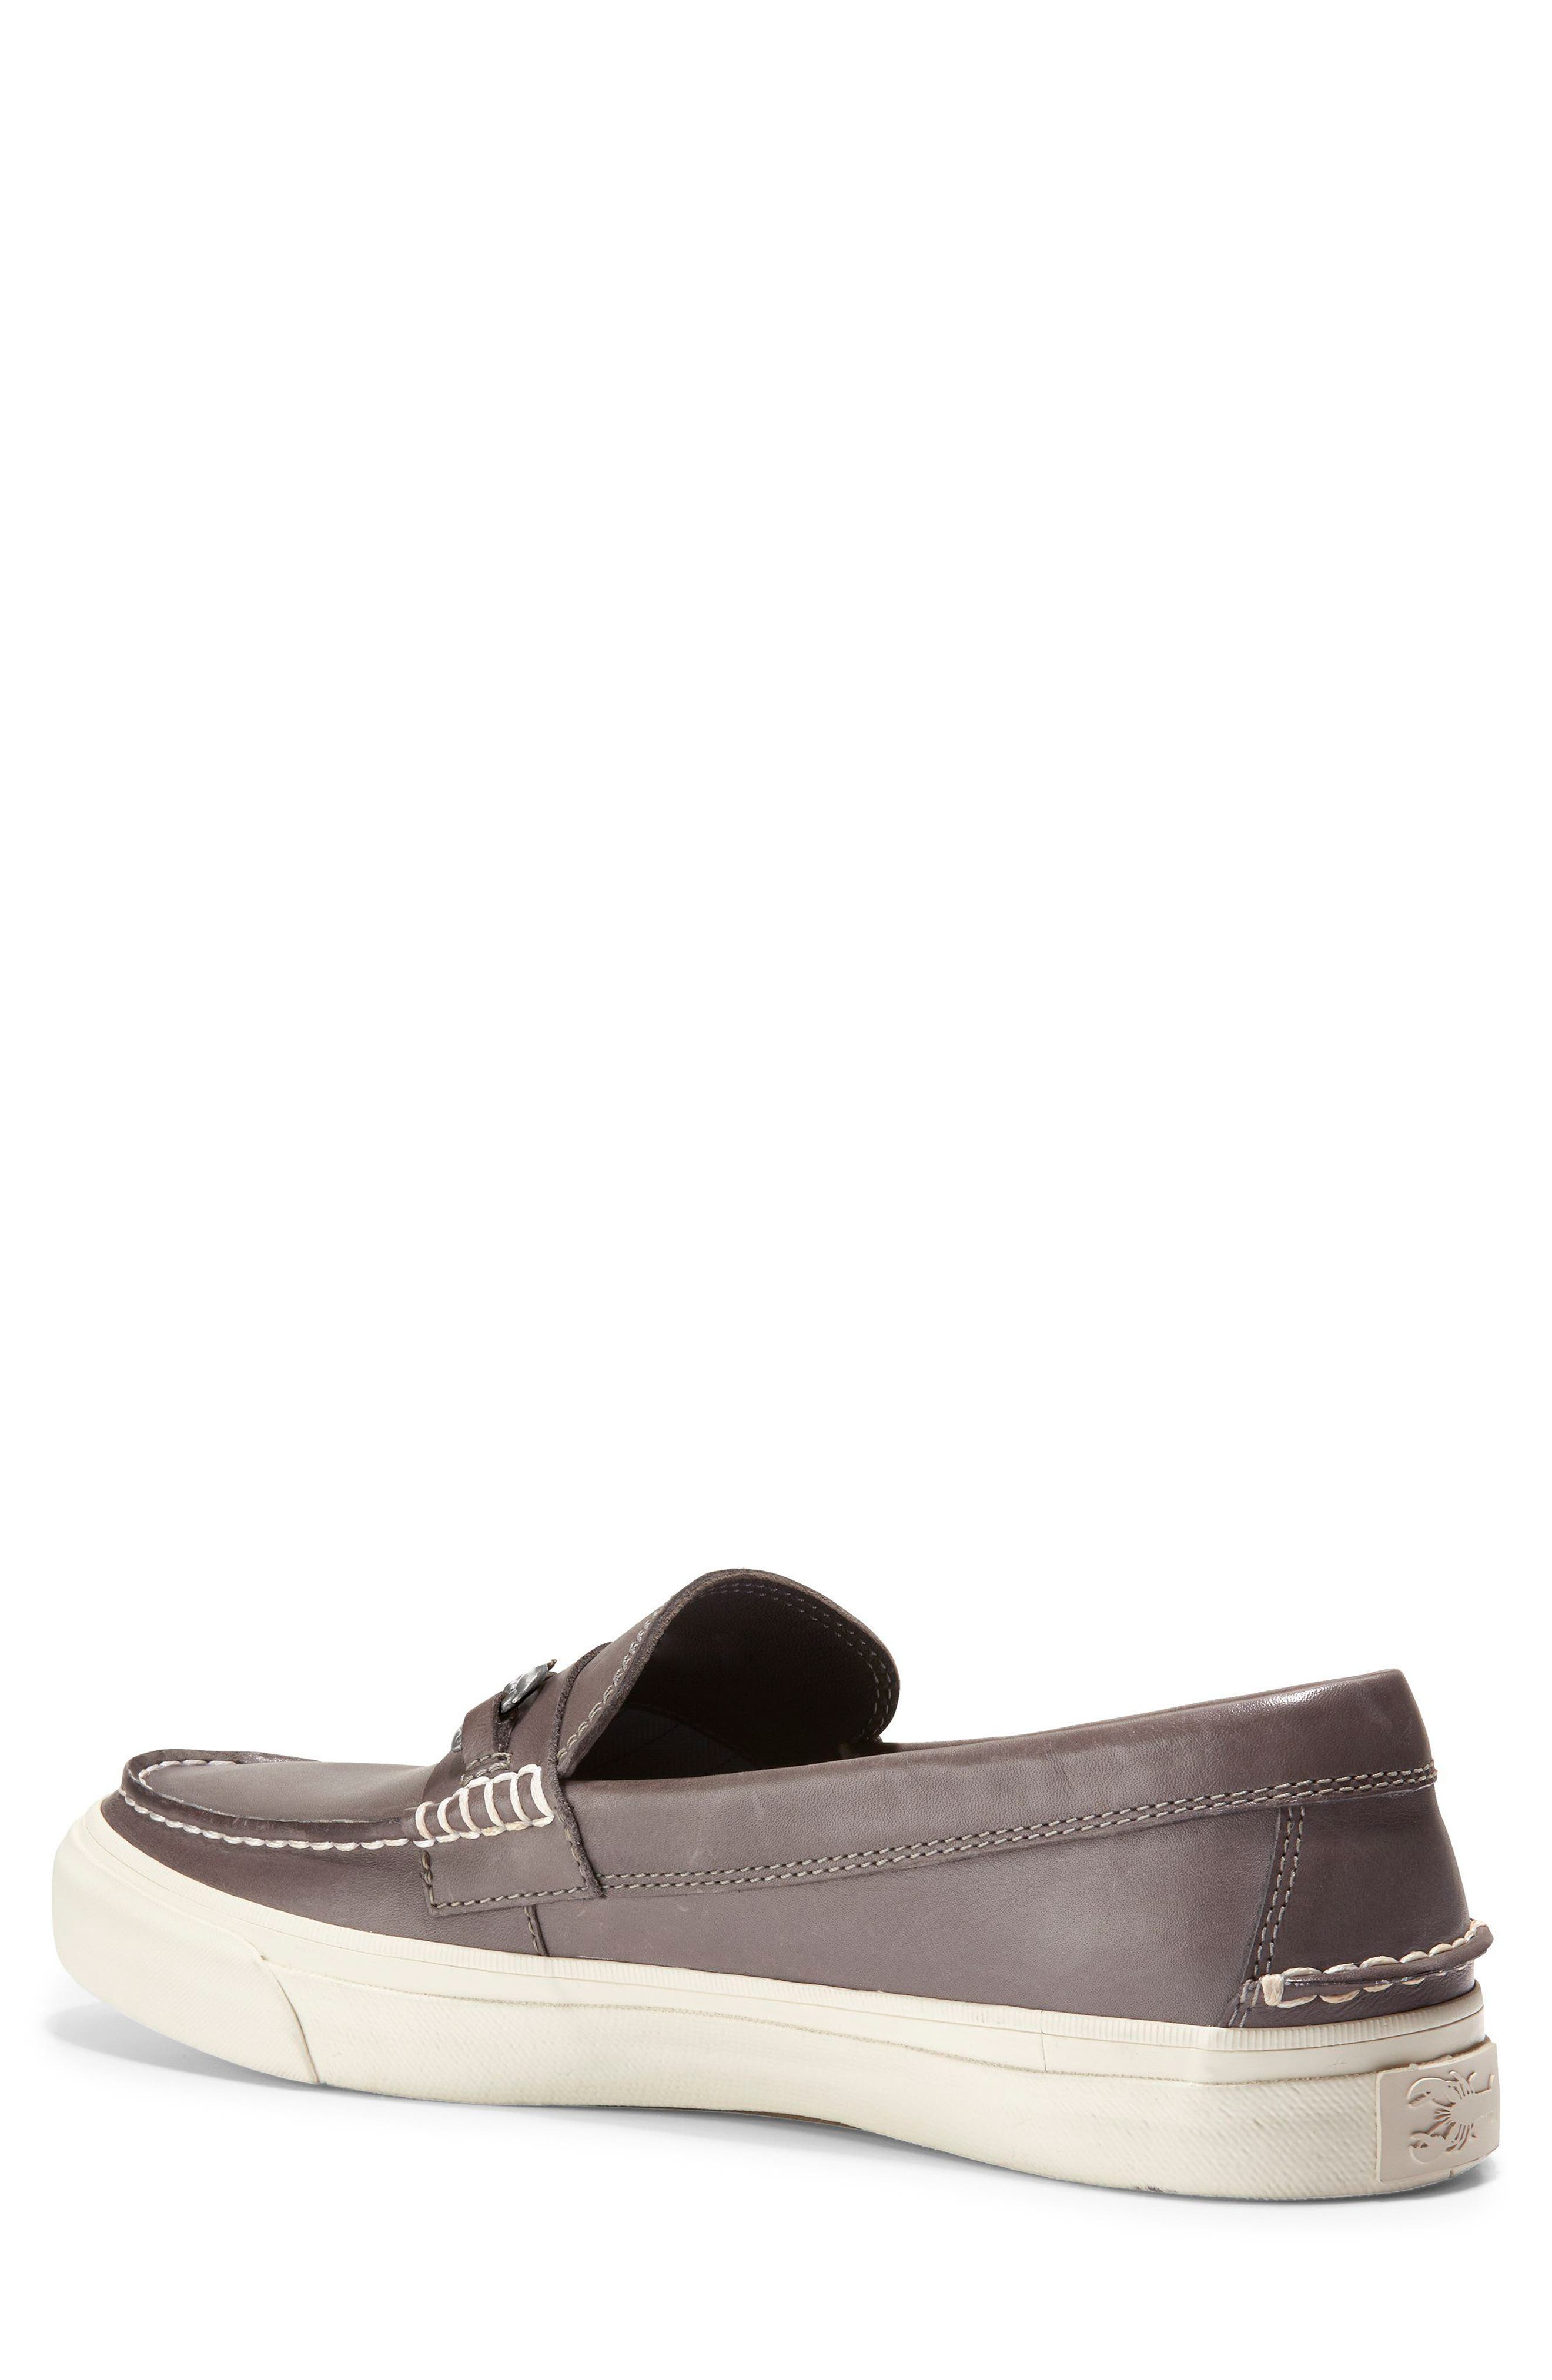 Pinch Weekend Loafer,                             Alternate thumbnail 2, color,                             Stormcloud Handstain